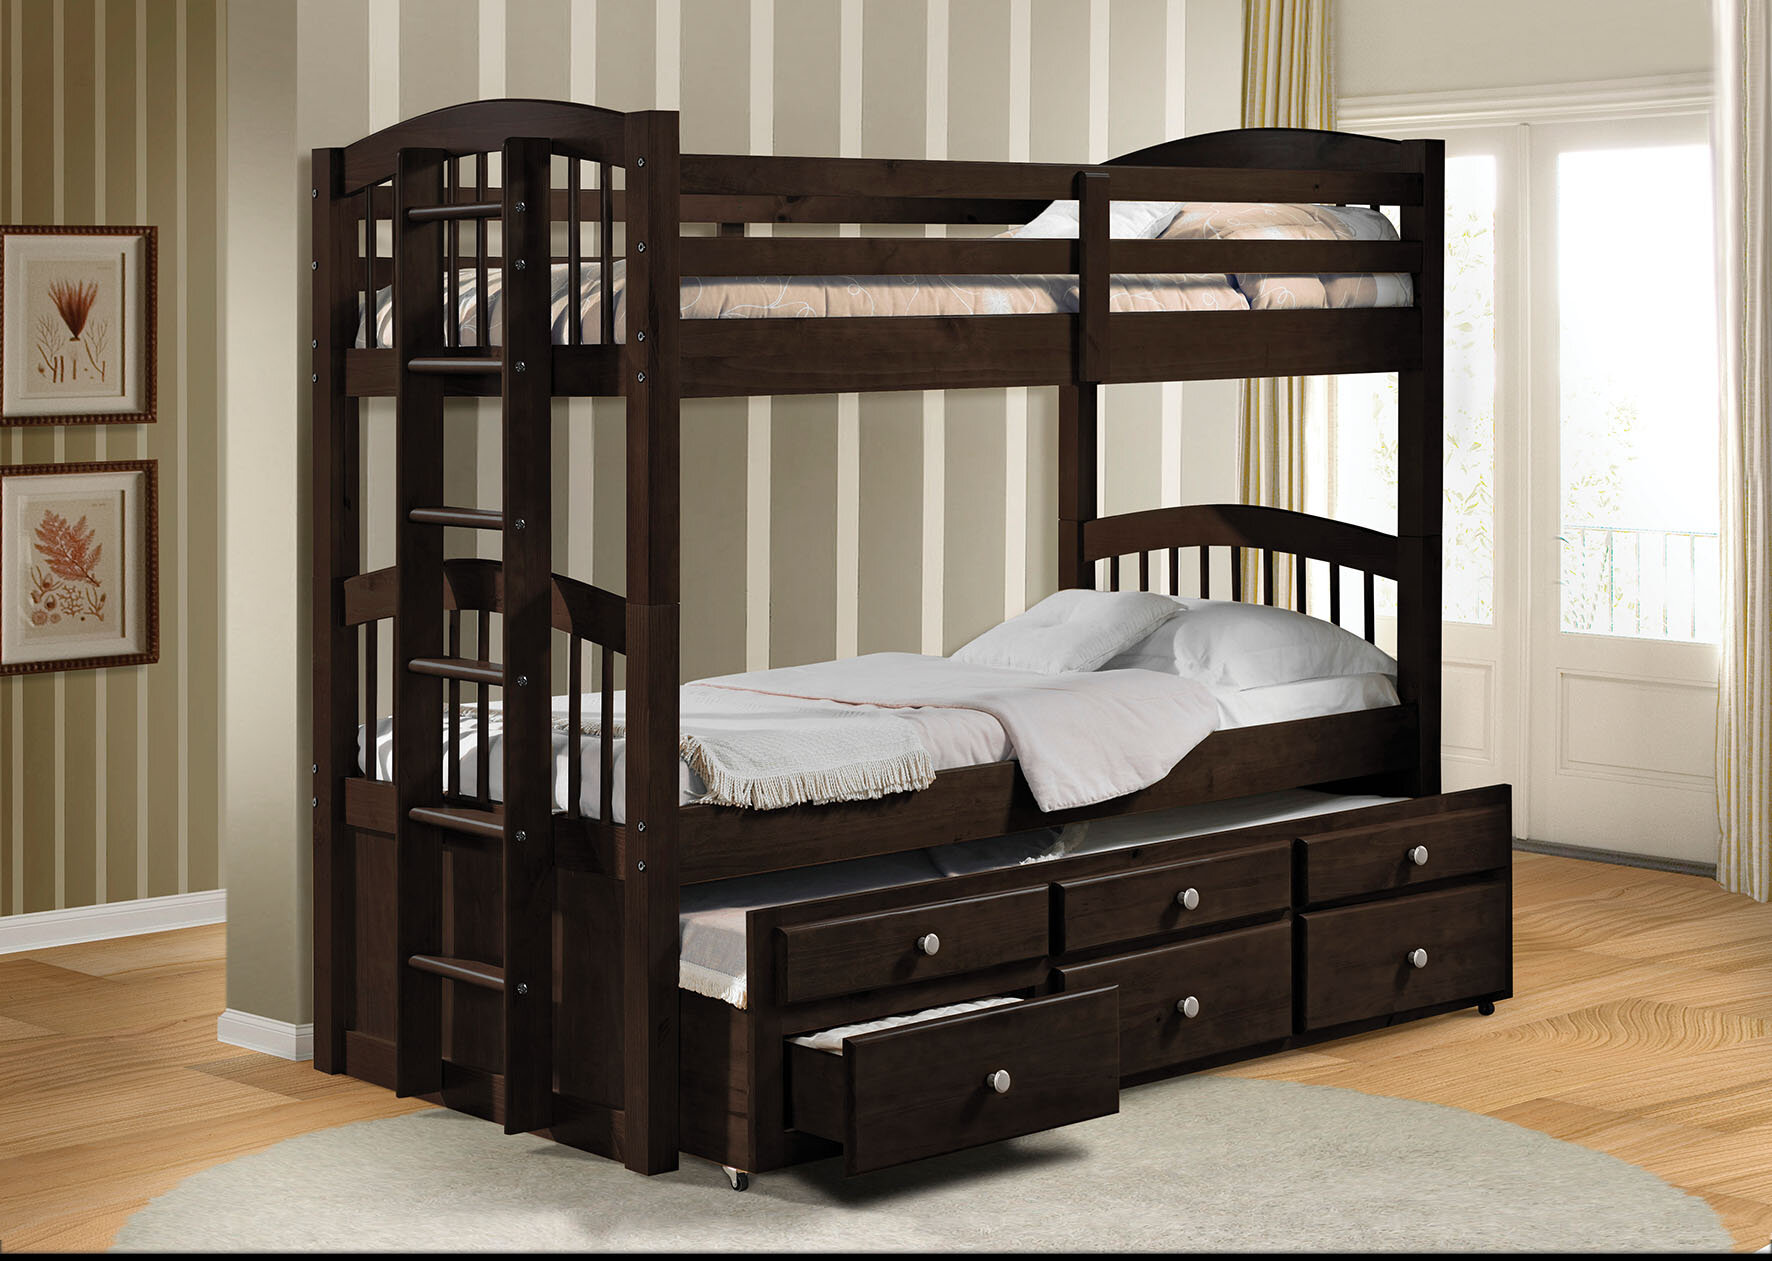 s bed wilker do frame drawers queen with drawer diy storage